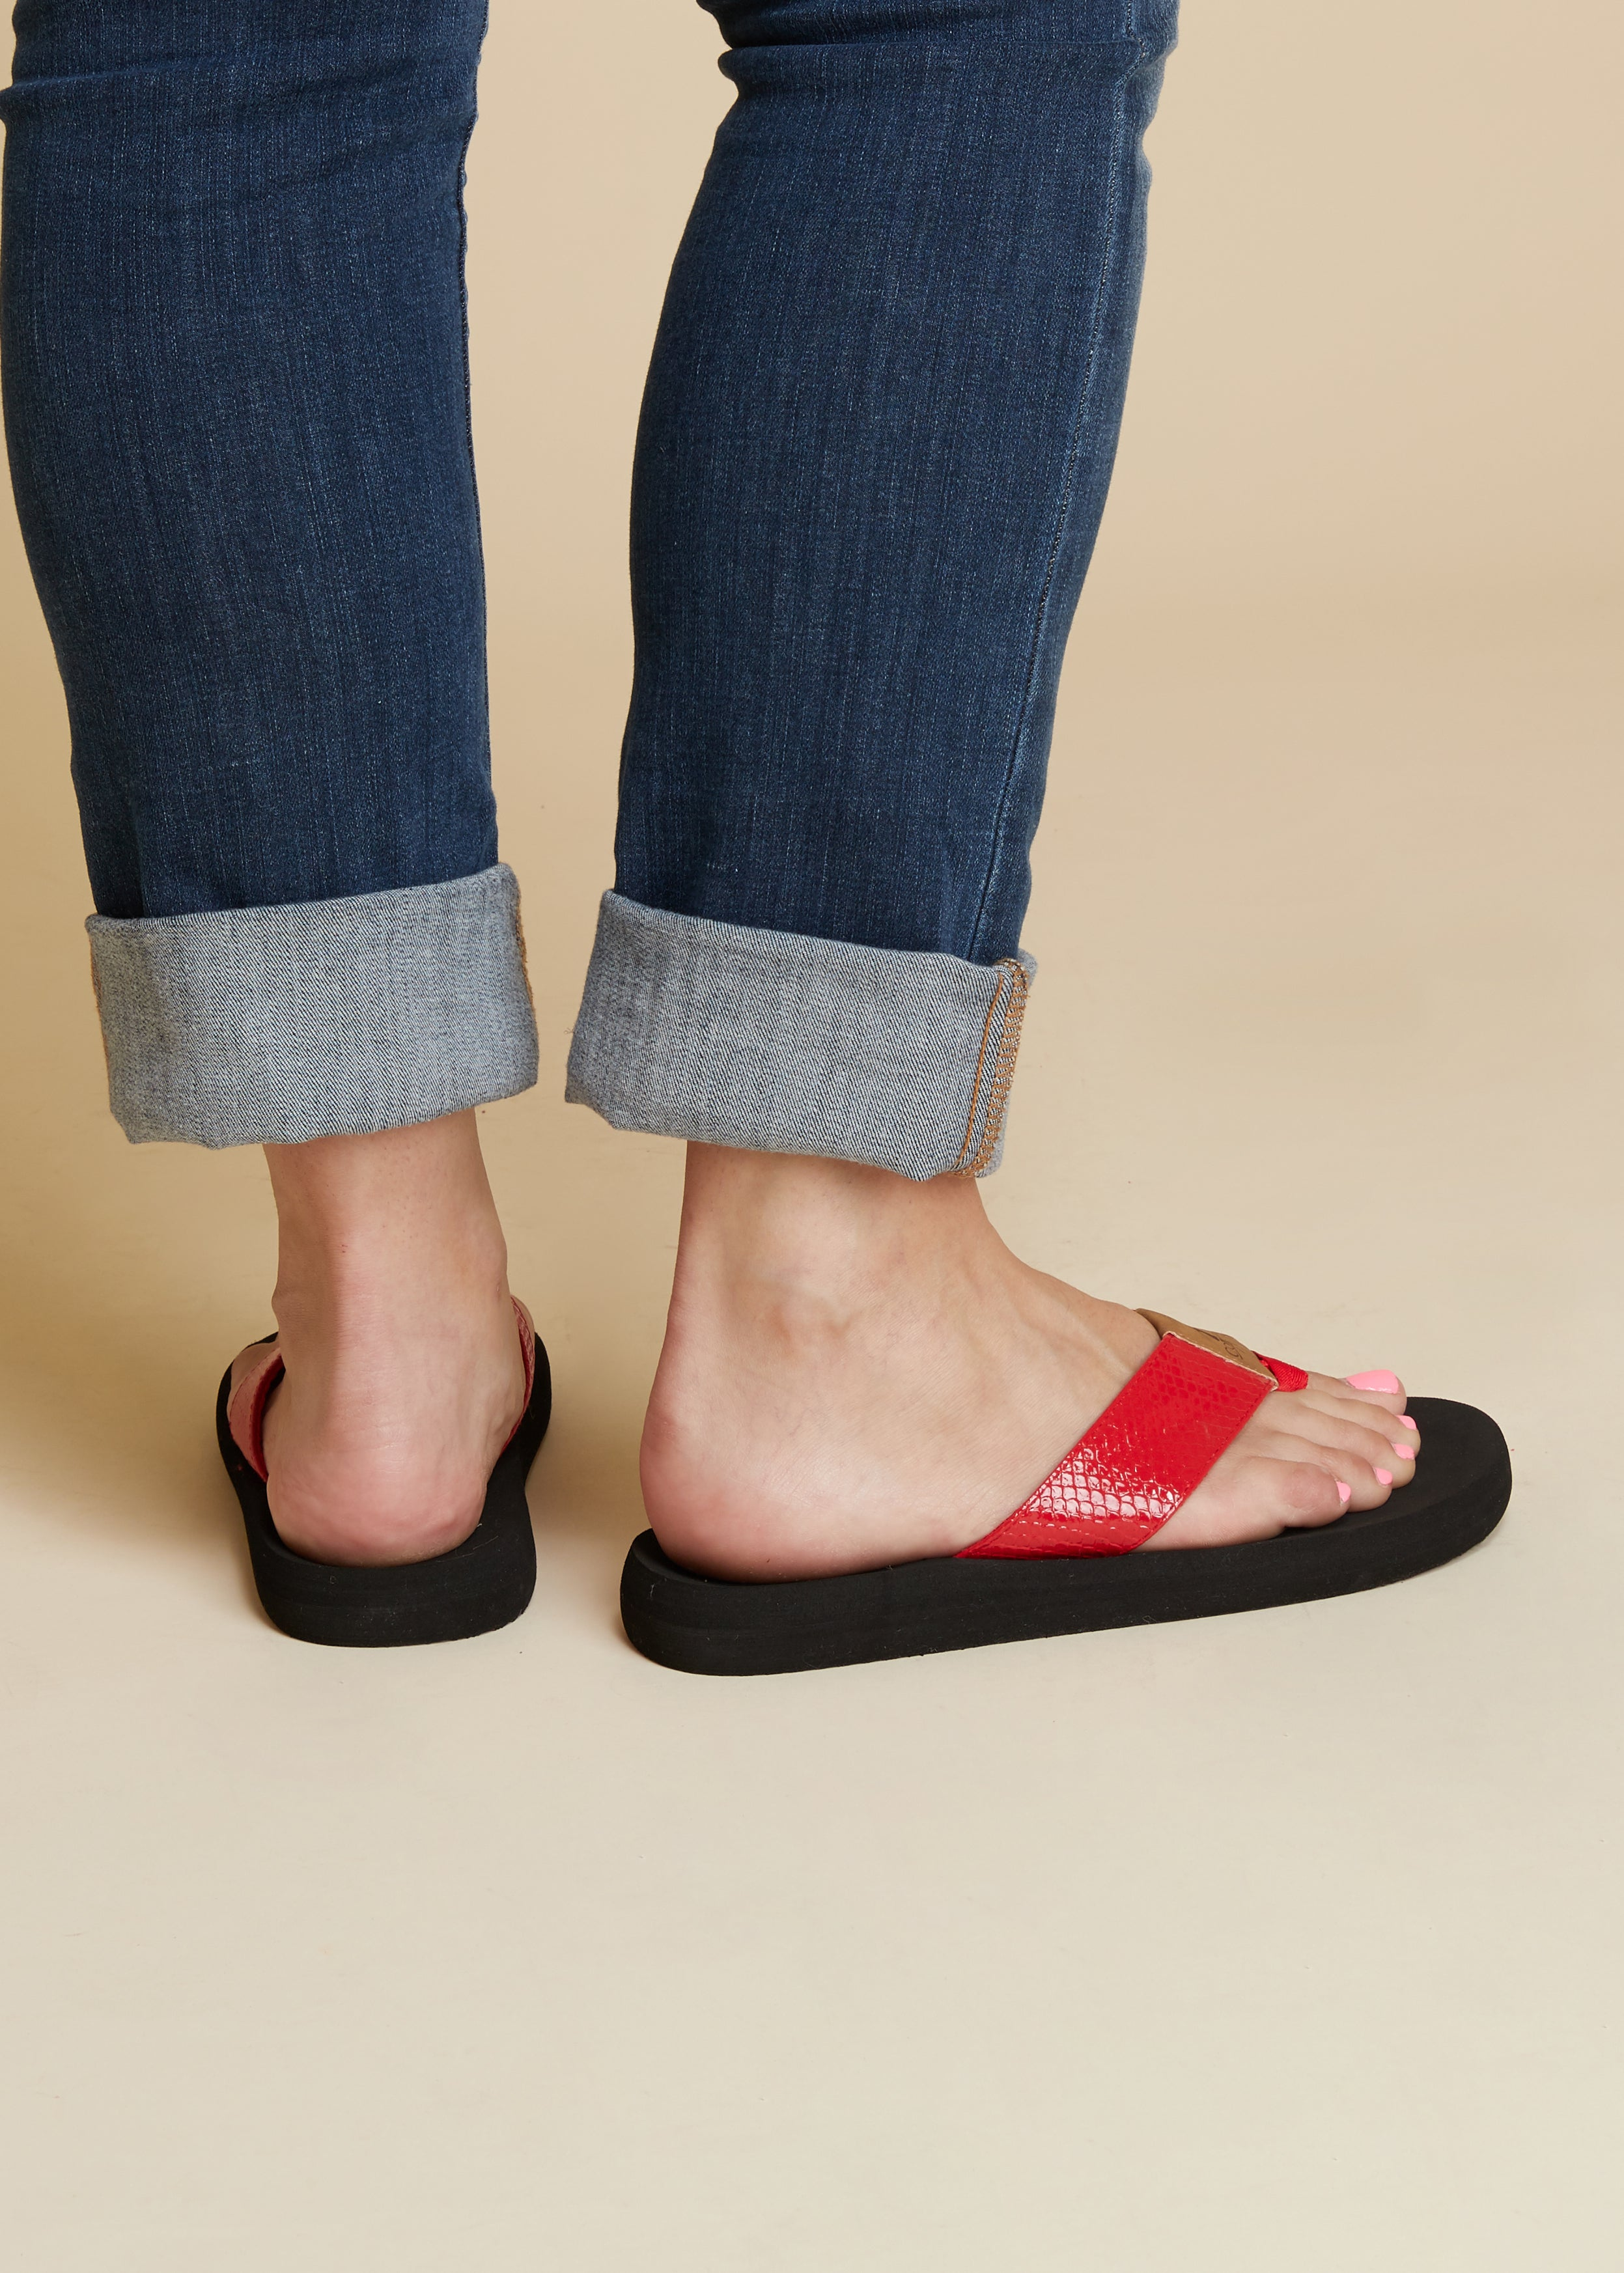 Royal Flip Flop by Corkys-RED-RESTOCK!